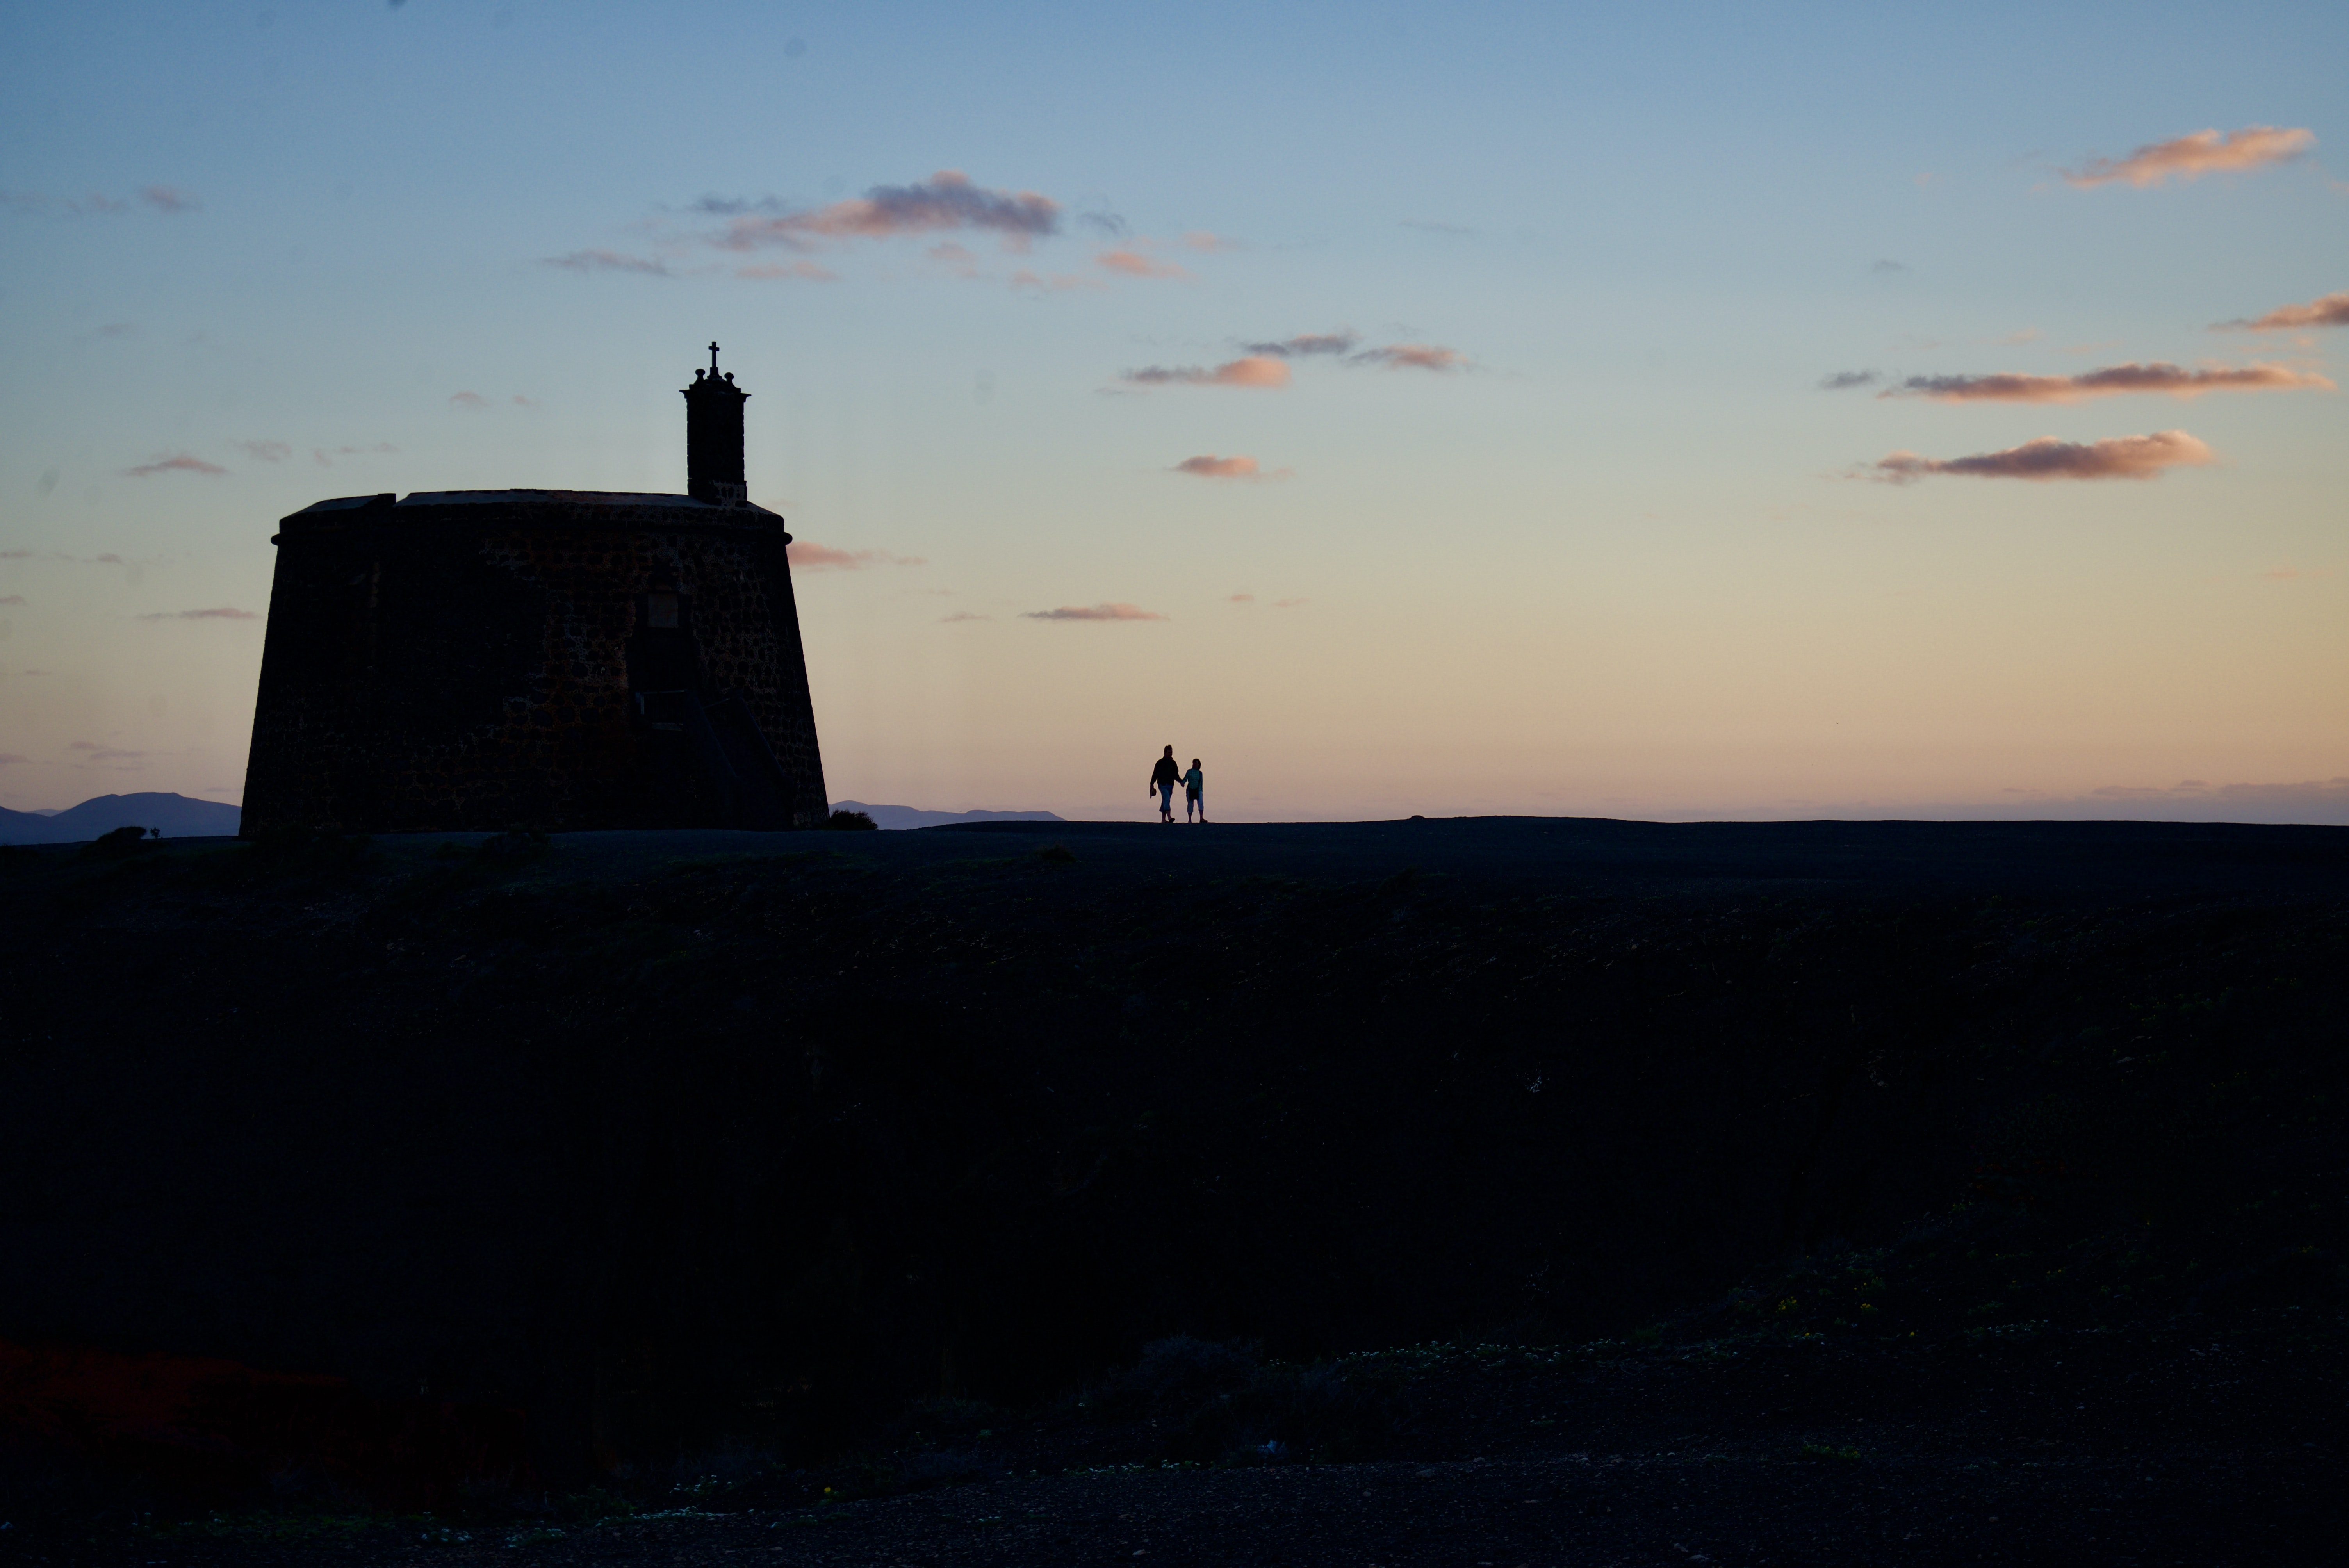 two people standing near structure silhouette photography